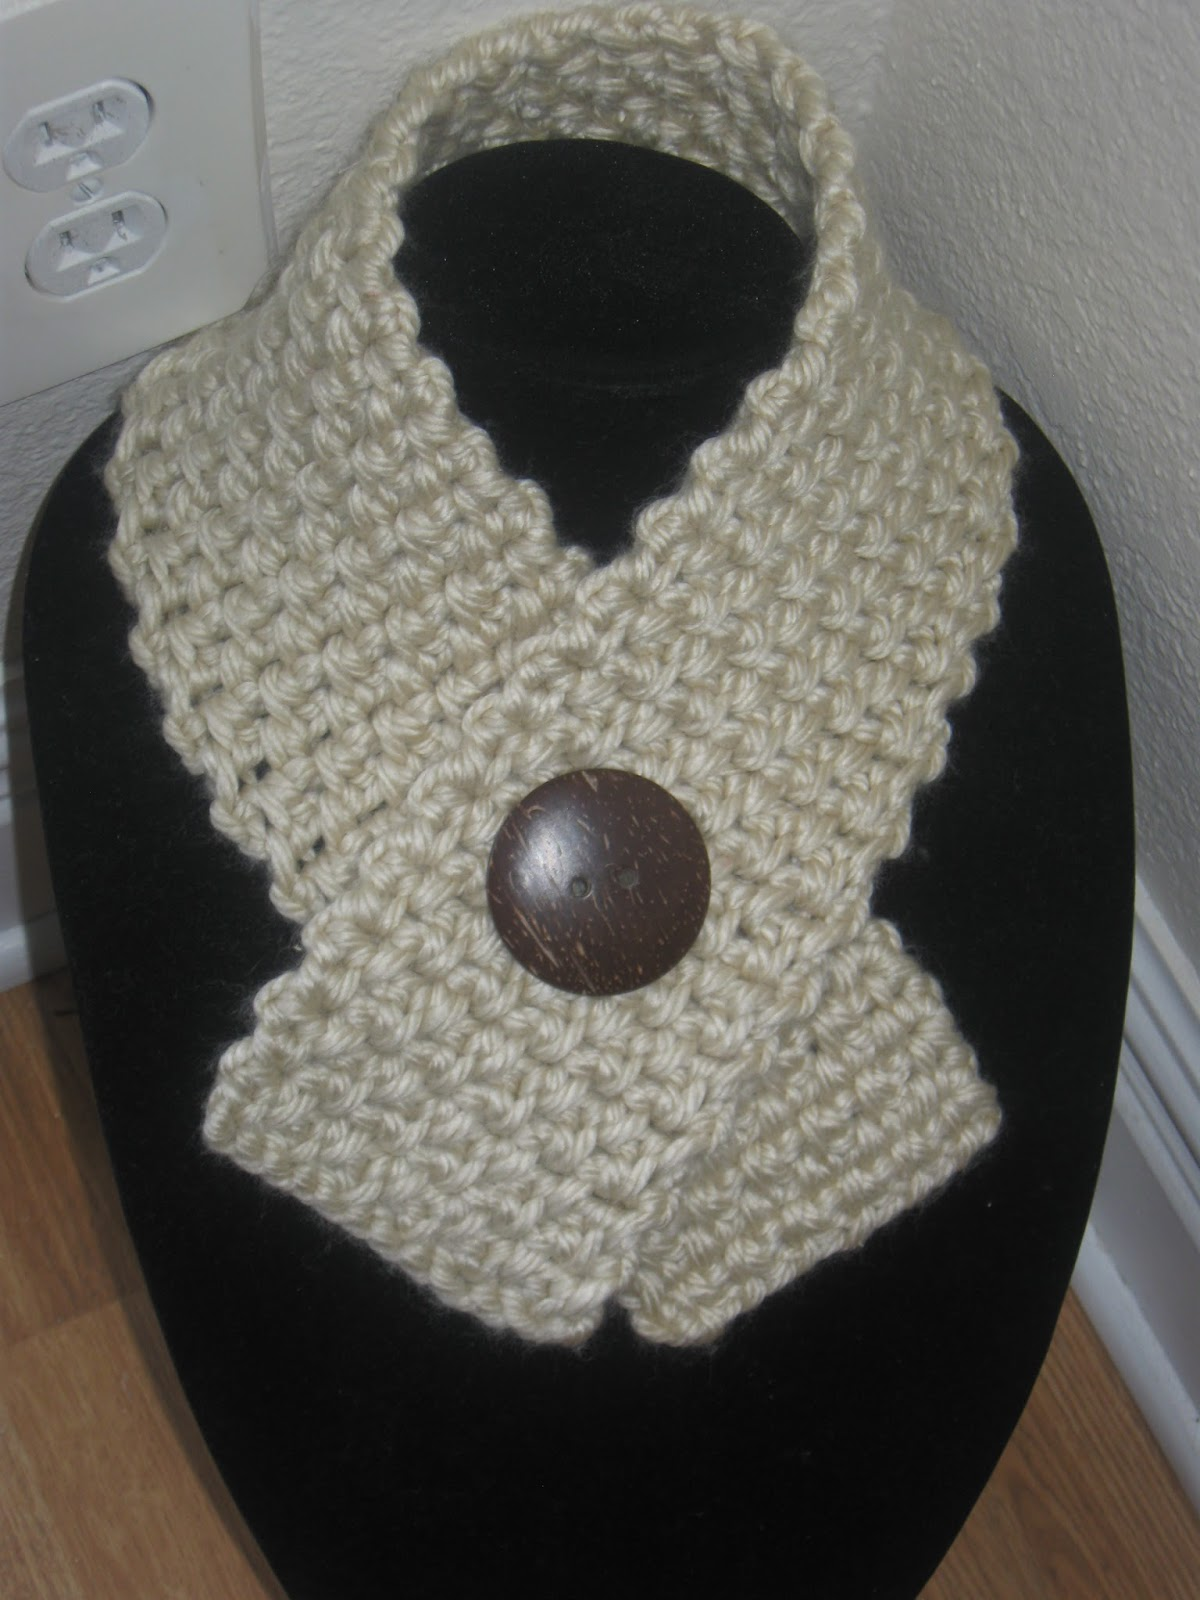 Crochet Patterns Neck Scarves : FOREVER AND A DAY: Free crocheted Neck warmer/scarf pattern